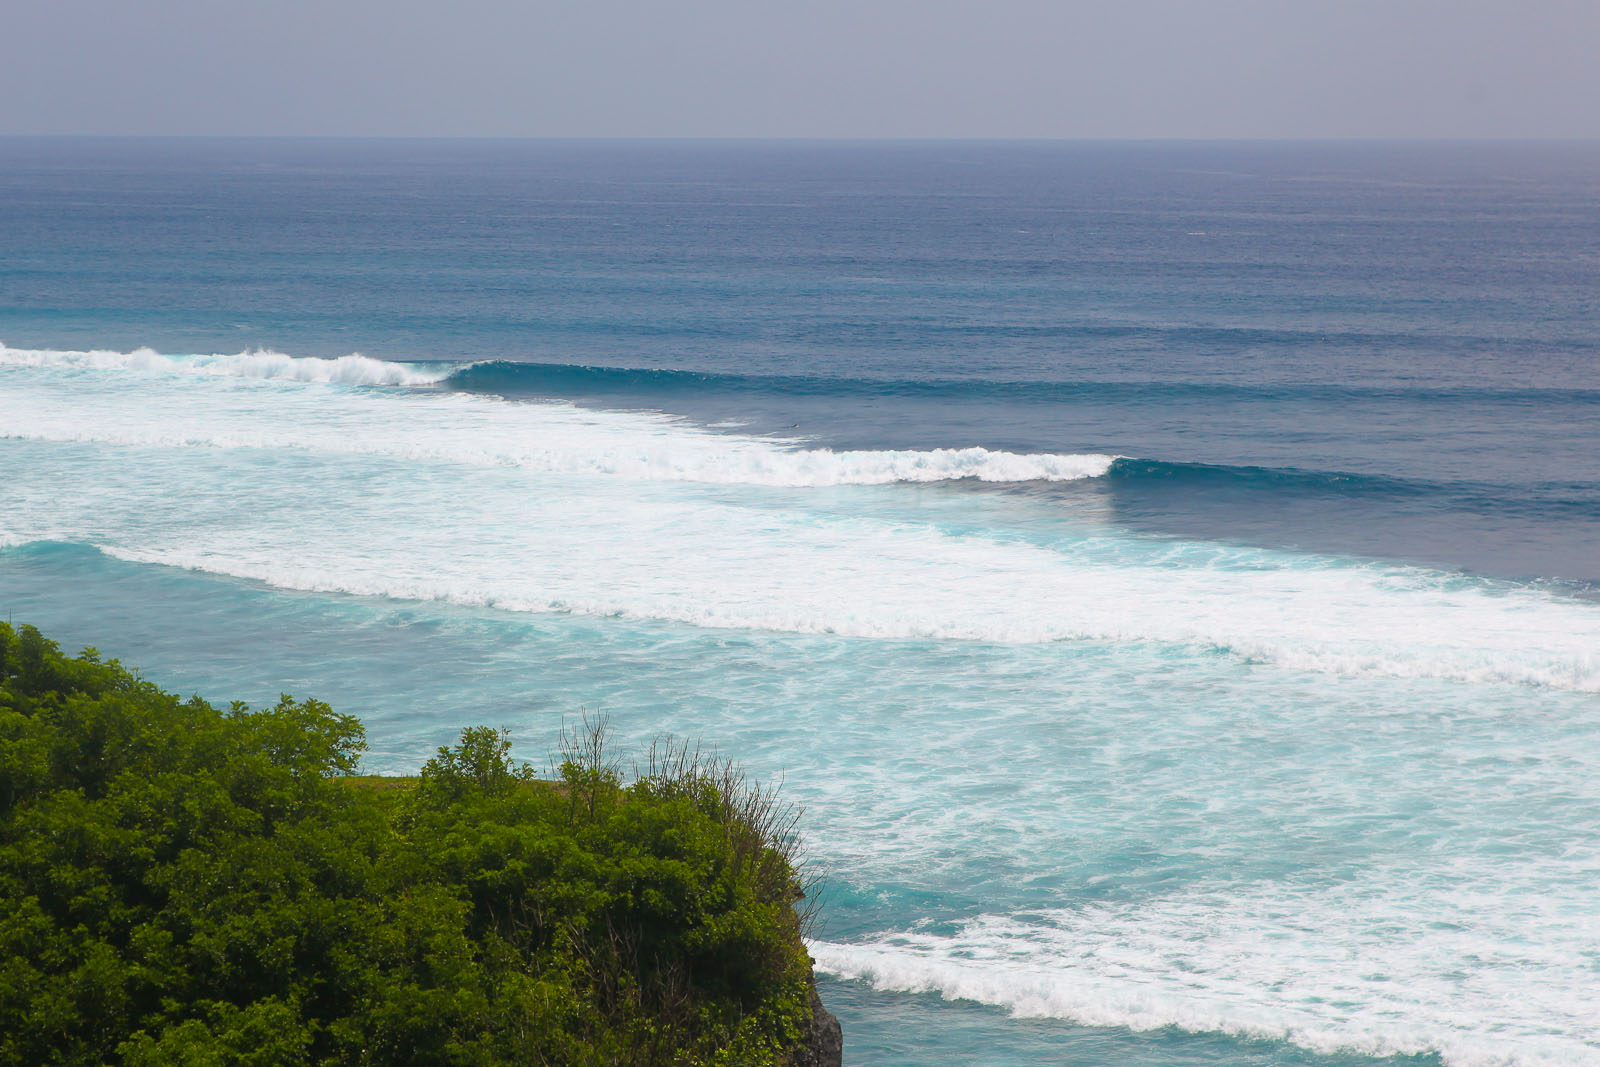 Bali-Travel-Blog-Seminyak-Restaurant-Bar-Breakfast-Surf-Uluwatu-The-Colonial-Hotel-Sea-Circus-2638